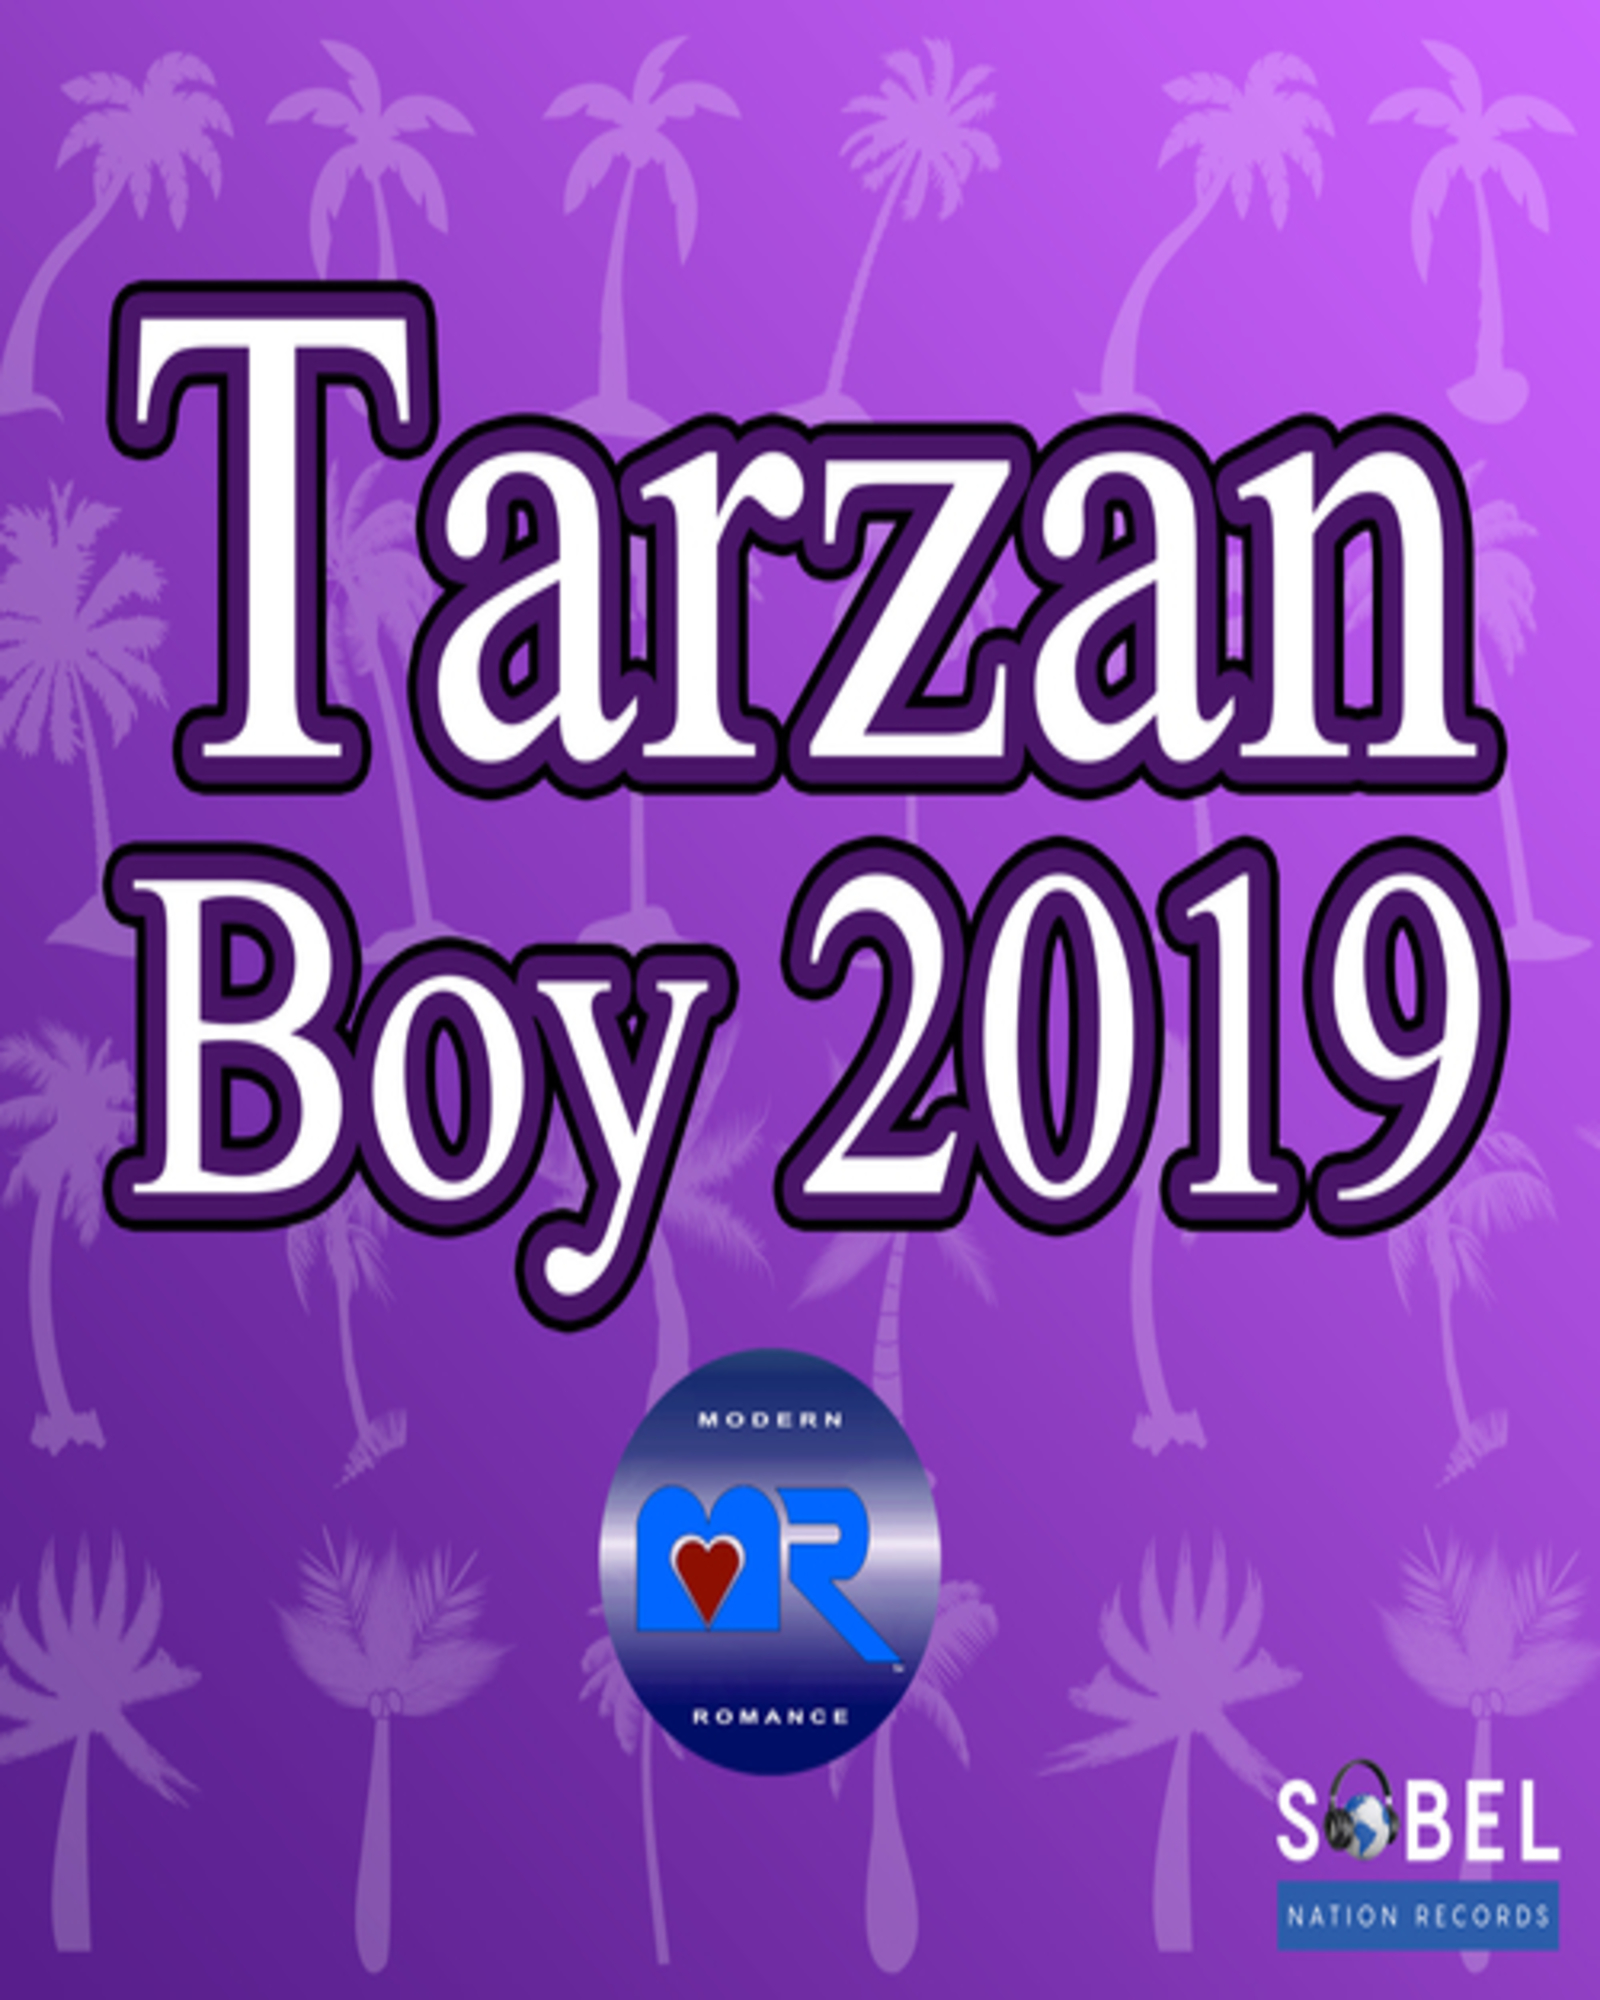 Modern Romance Drops 'Tarzan Boy' On Sobel Nation Records